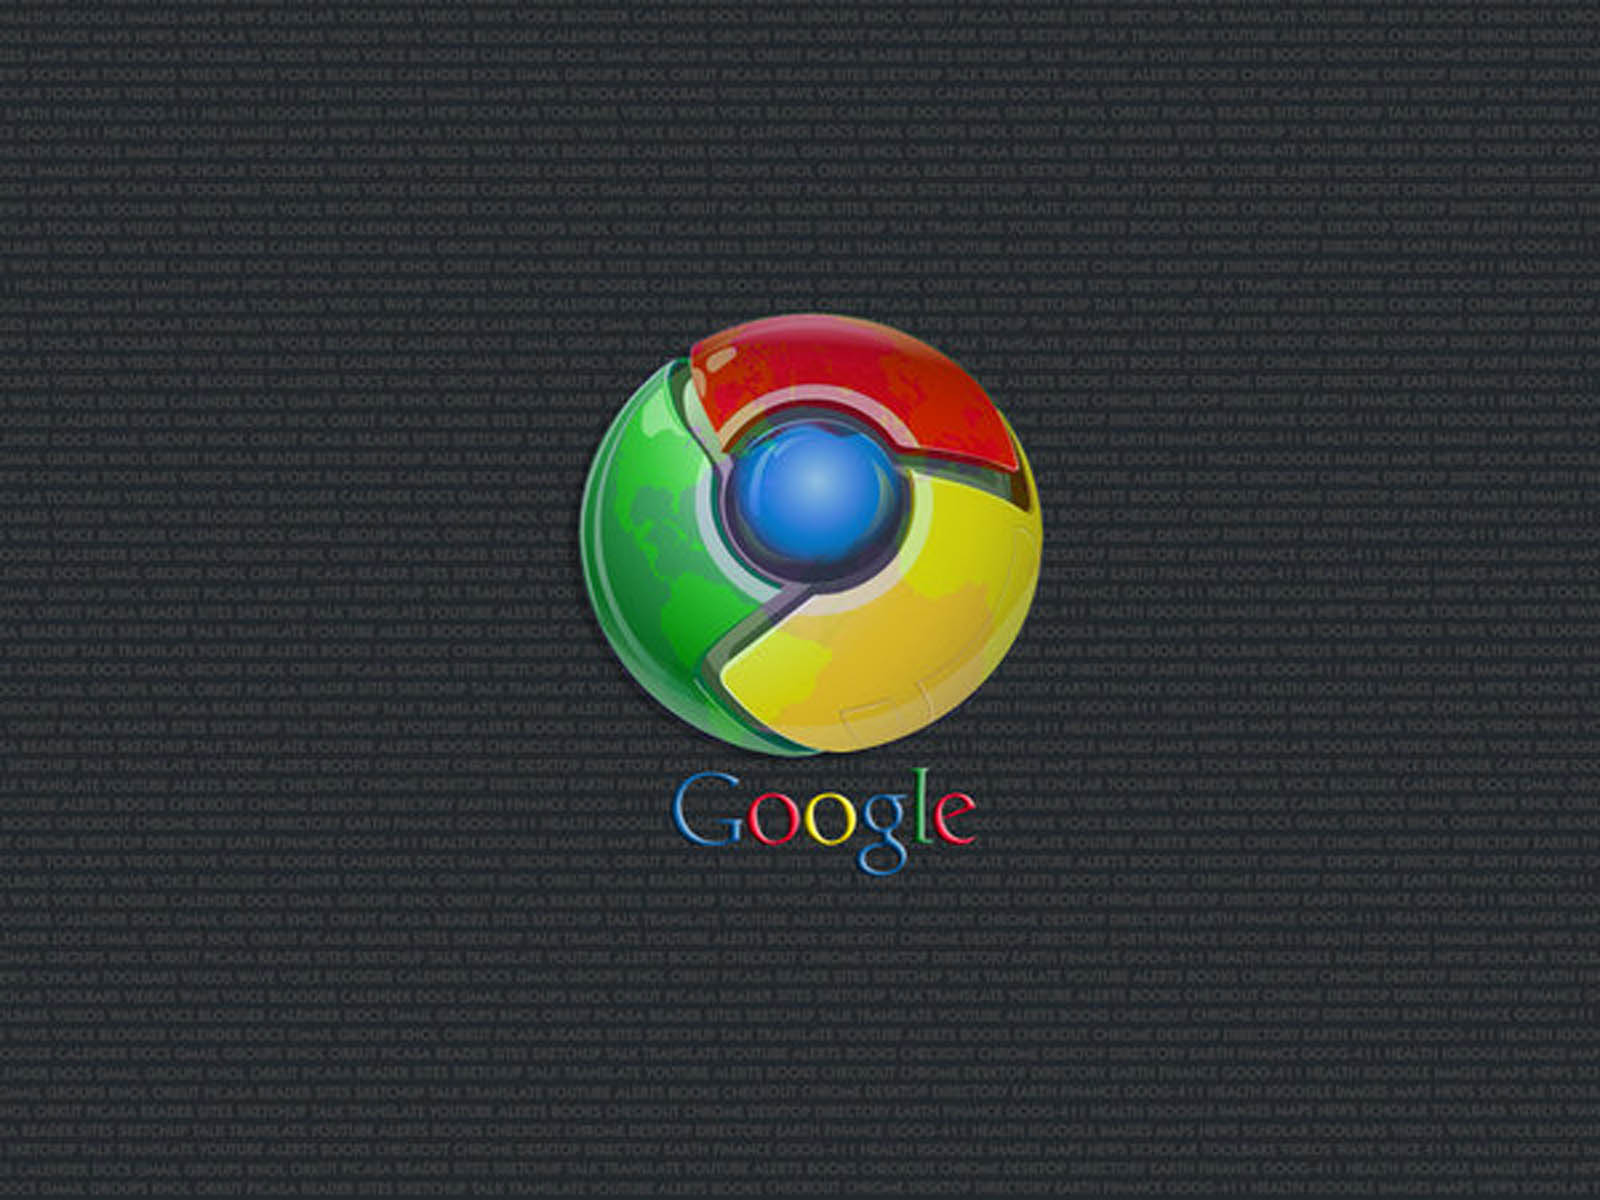 chrome wallpaper bing images